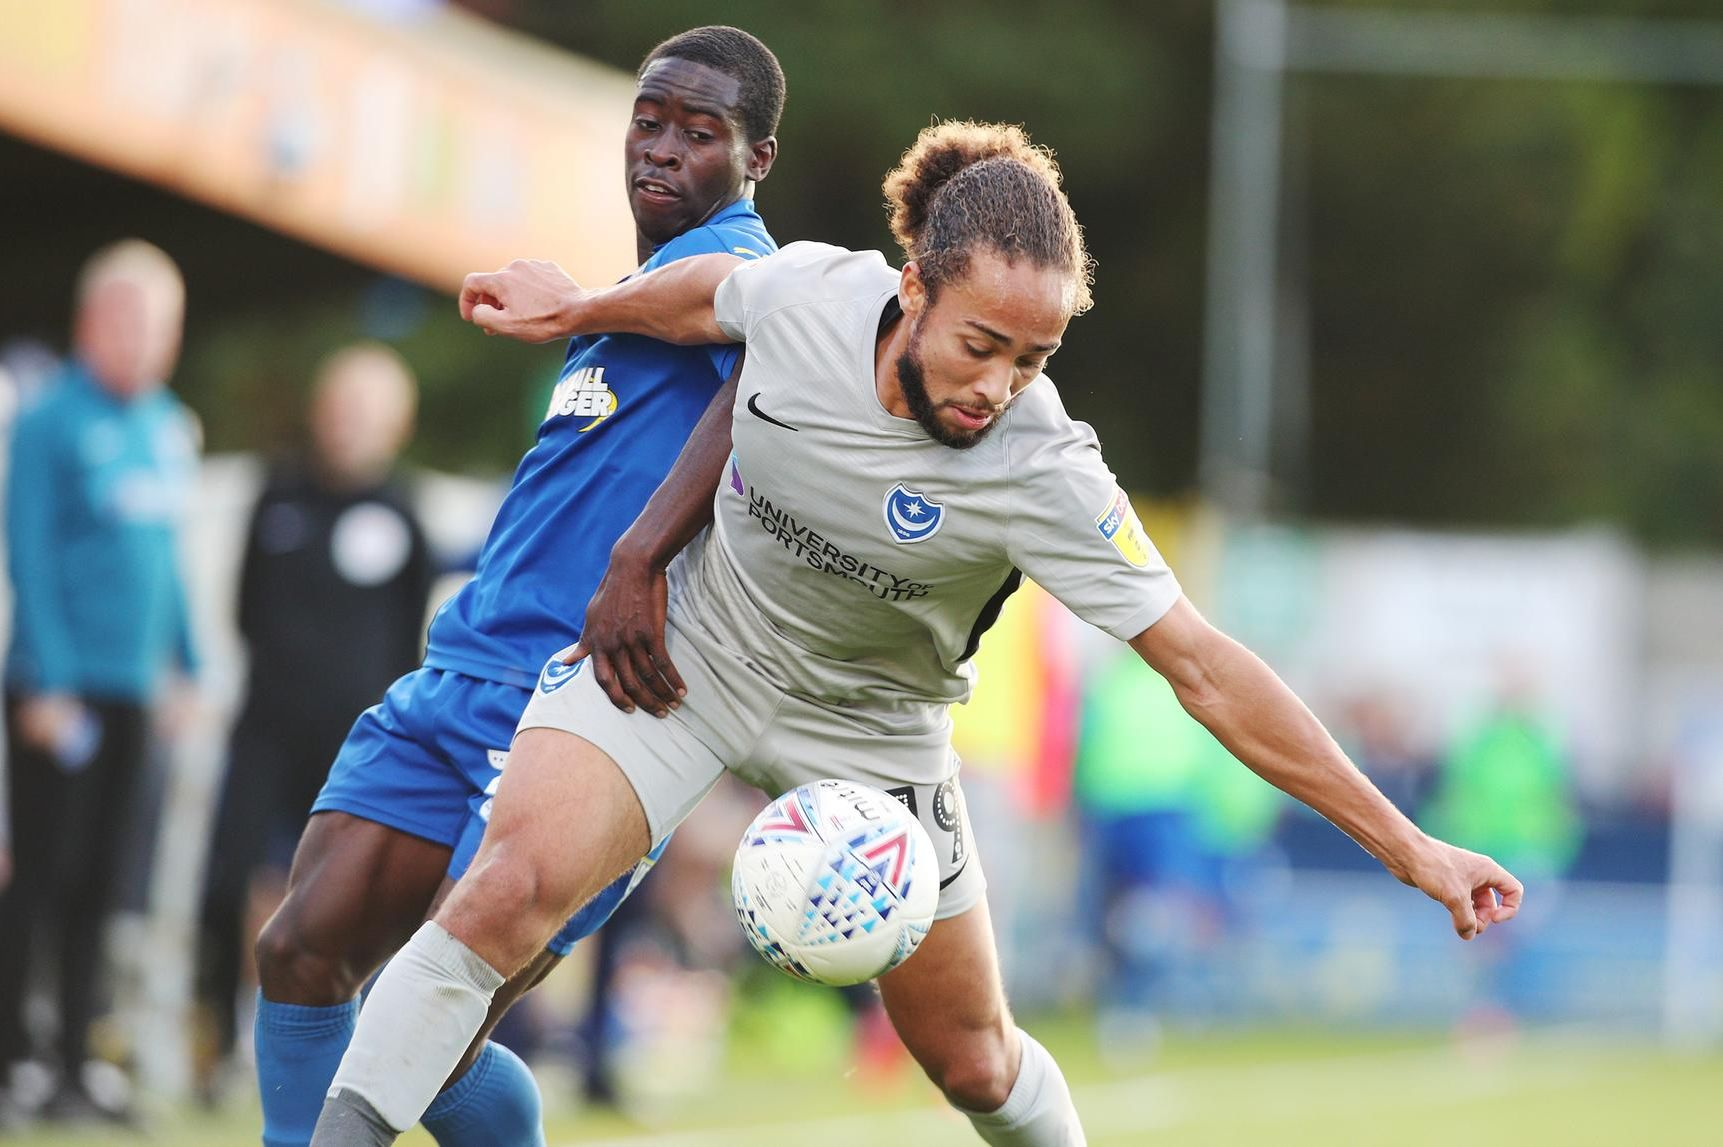 AFC Wimbledon 1-0 Portsmouth: Full-time picture gallery from Kingsmeadow